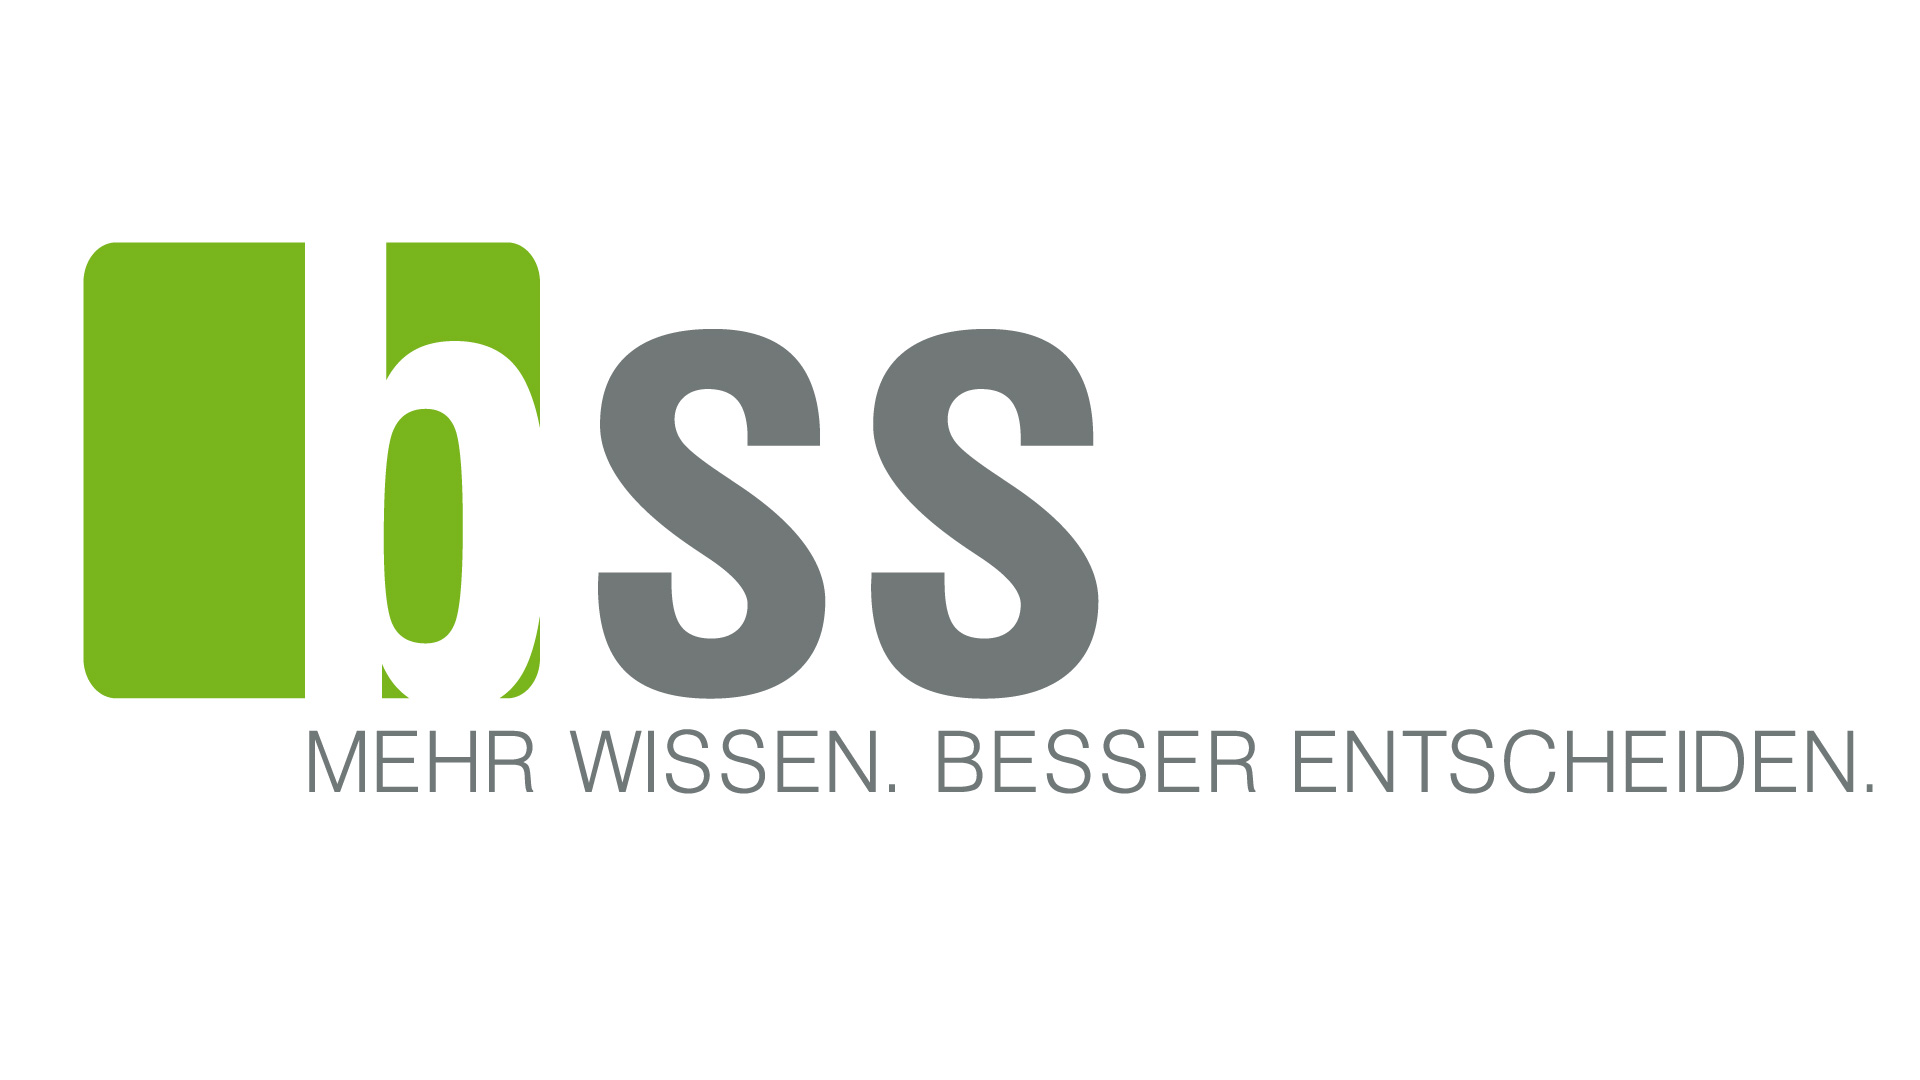 b_s_s_business_software_solutions_gmbh_logo